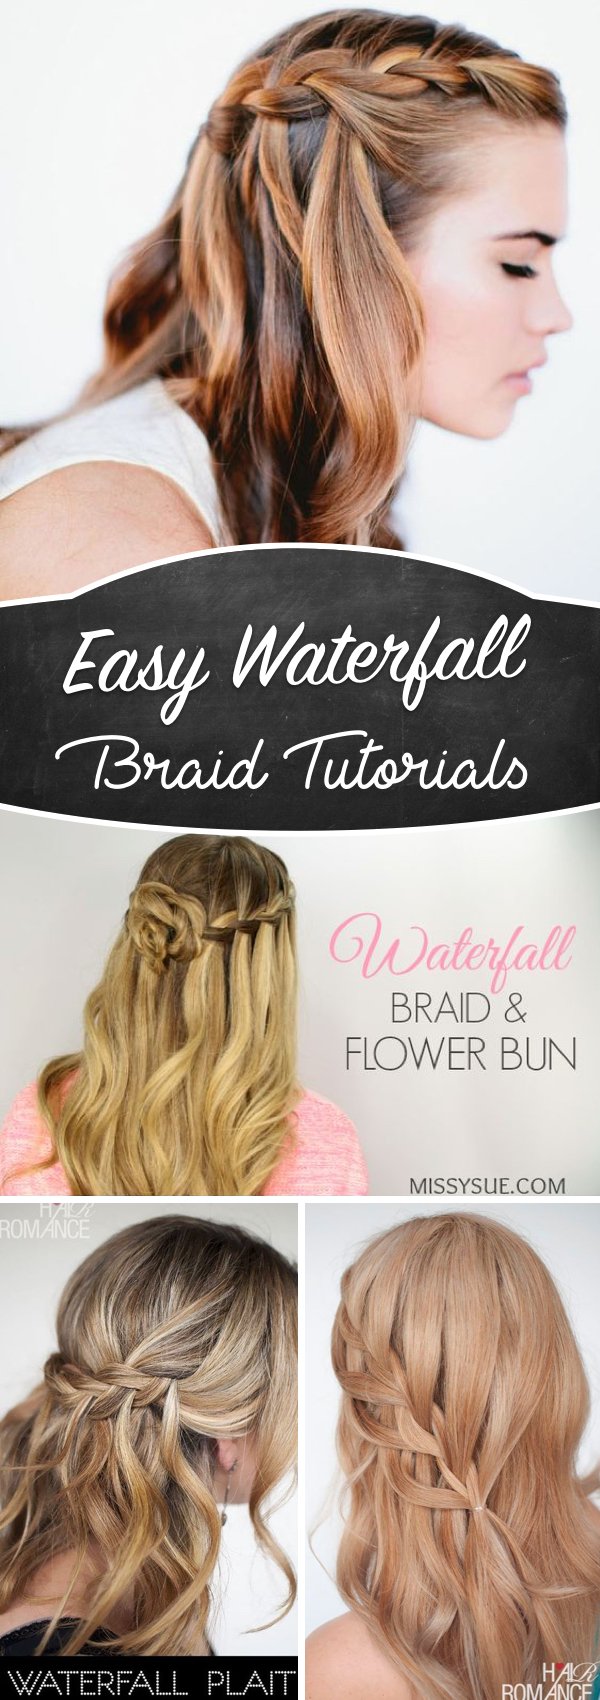 20 Waterfall Braid Tutorials Adding Beautiful Twists And Turns To Your Hair